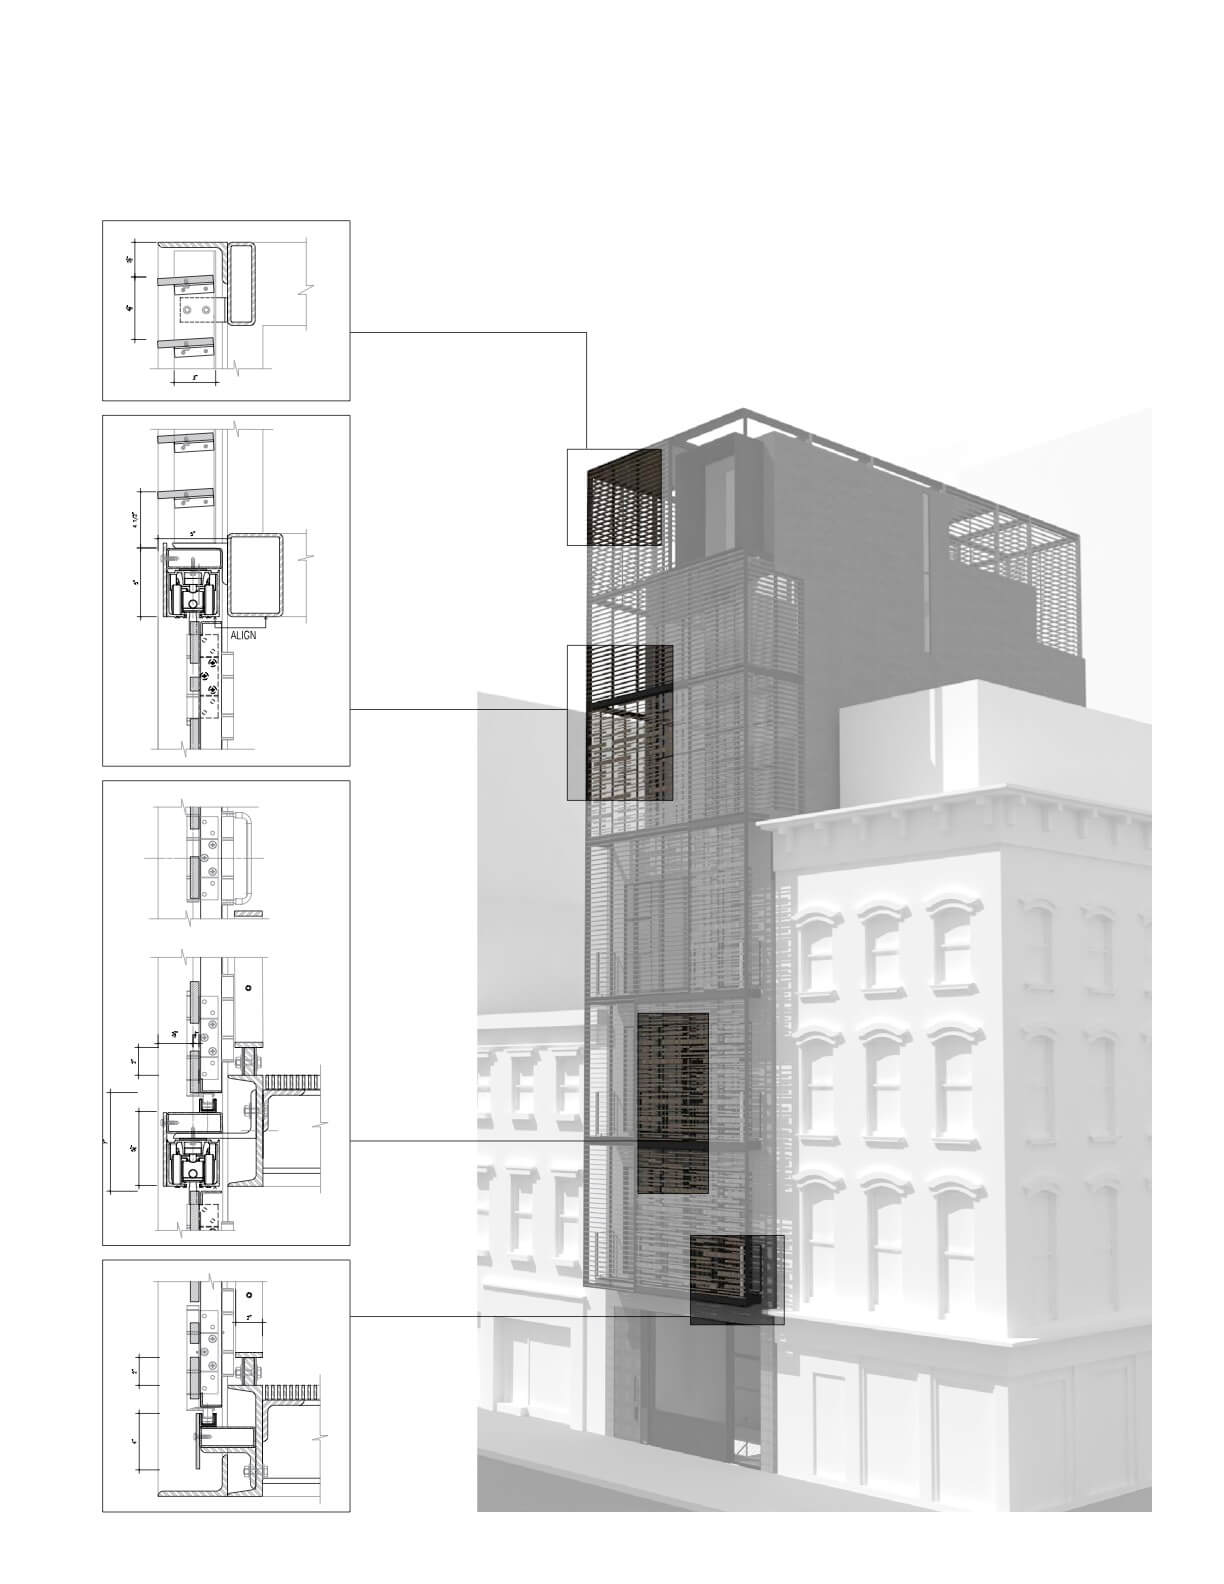 axonometric and diagram of building